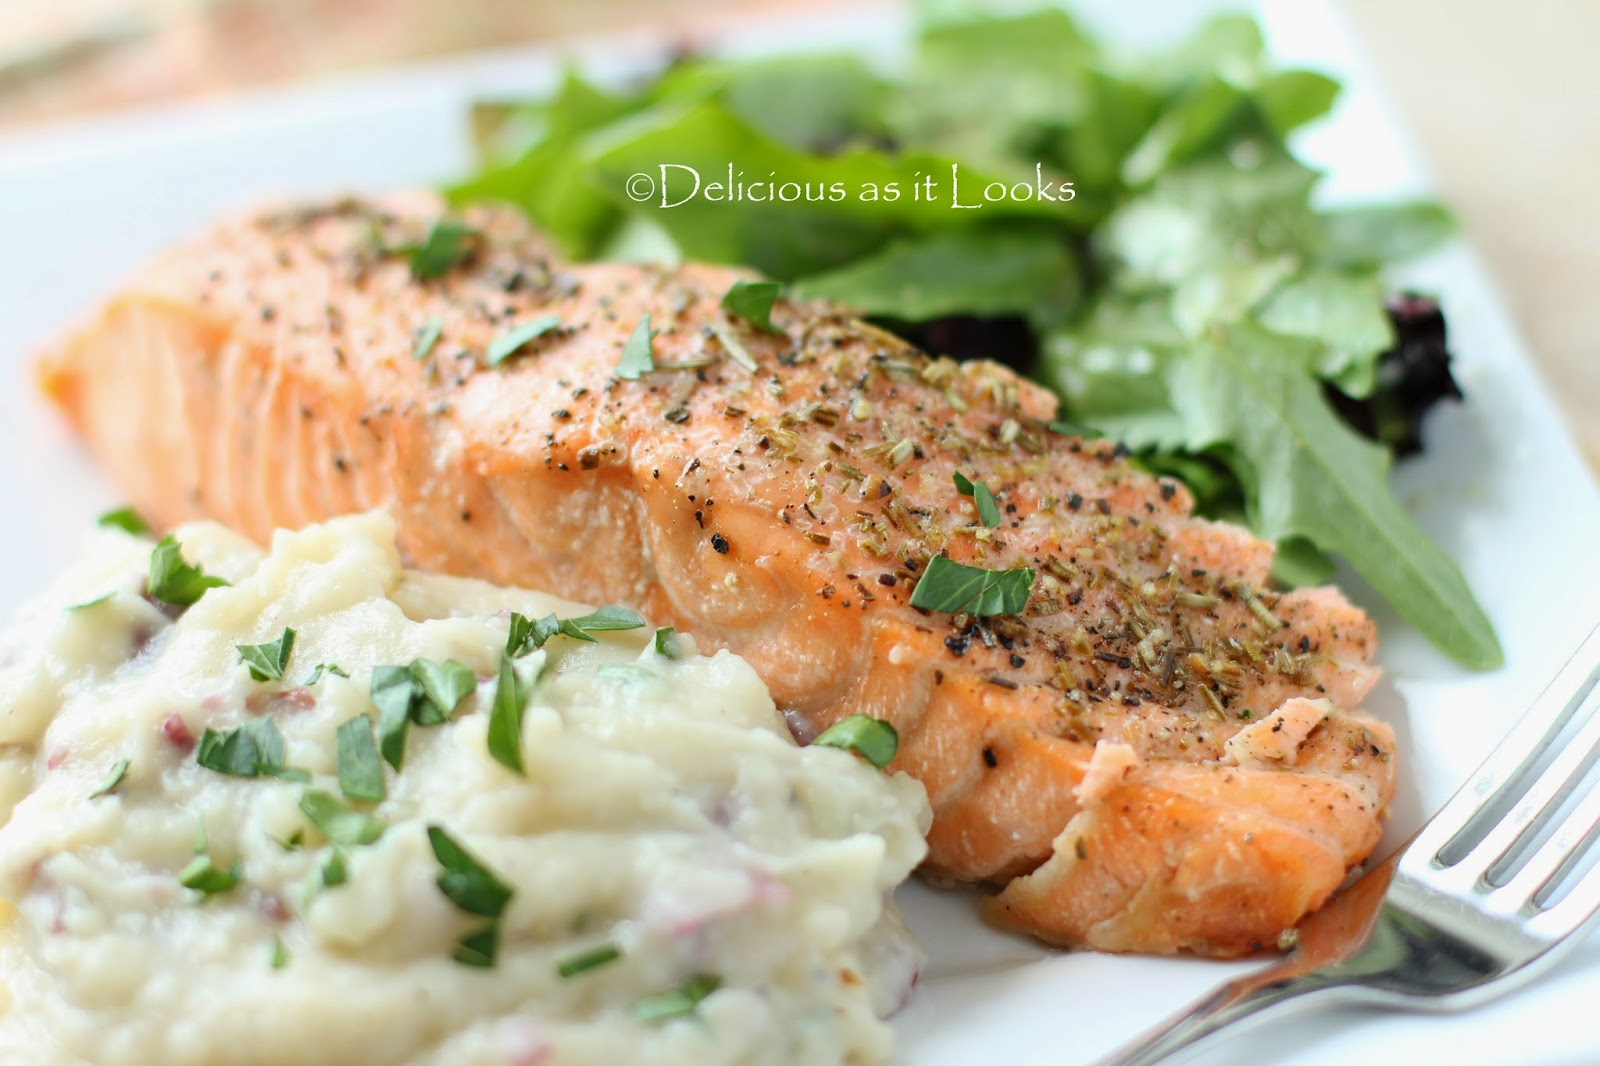 Garlic Oil & Rosemary Roasted Salmon  /  Delicious as it Looks